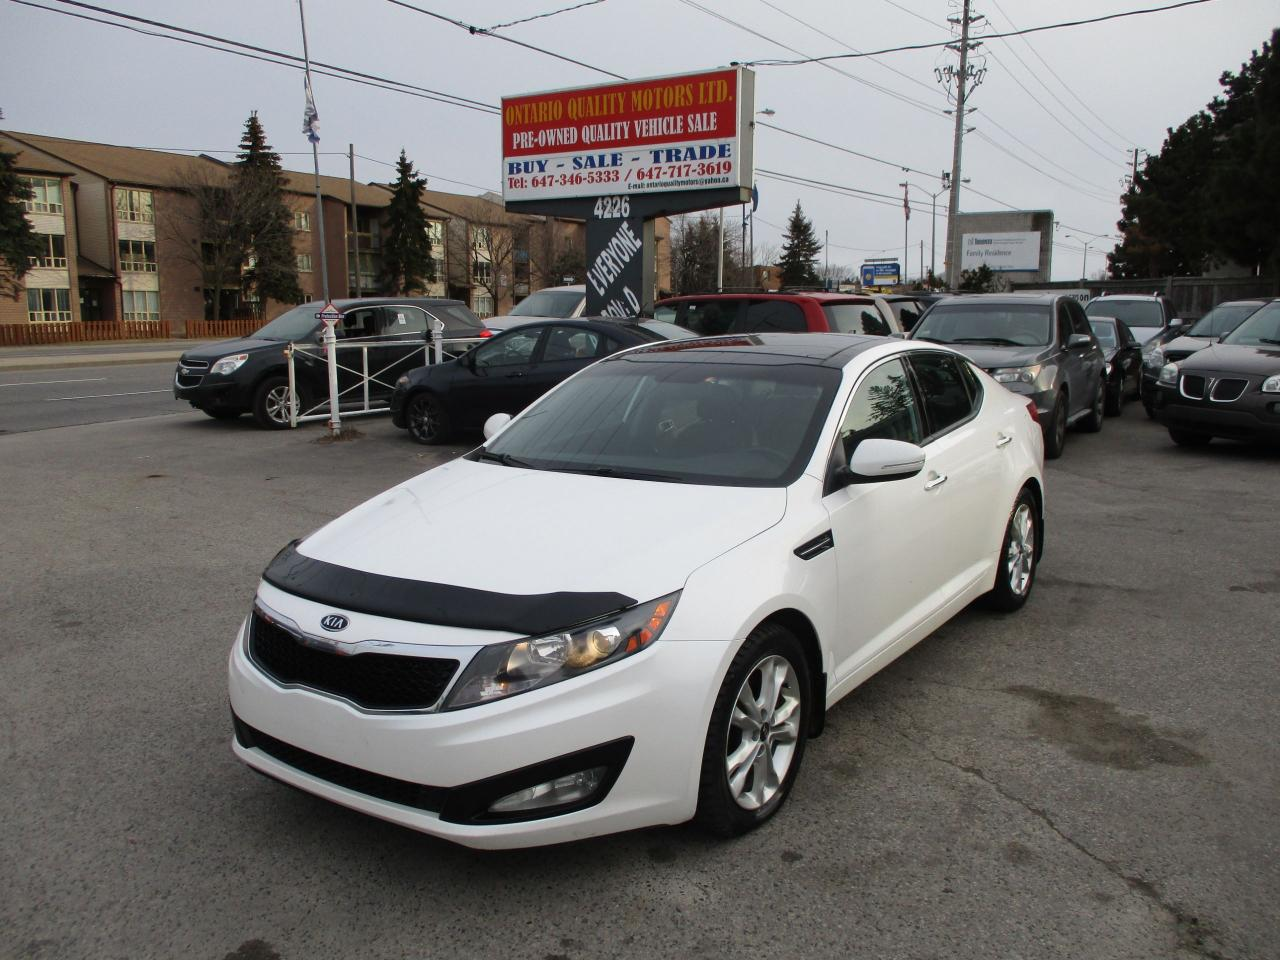 optima island for of sale to family kia bought ny in car used vt new rutland staten be price